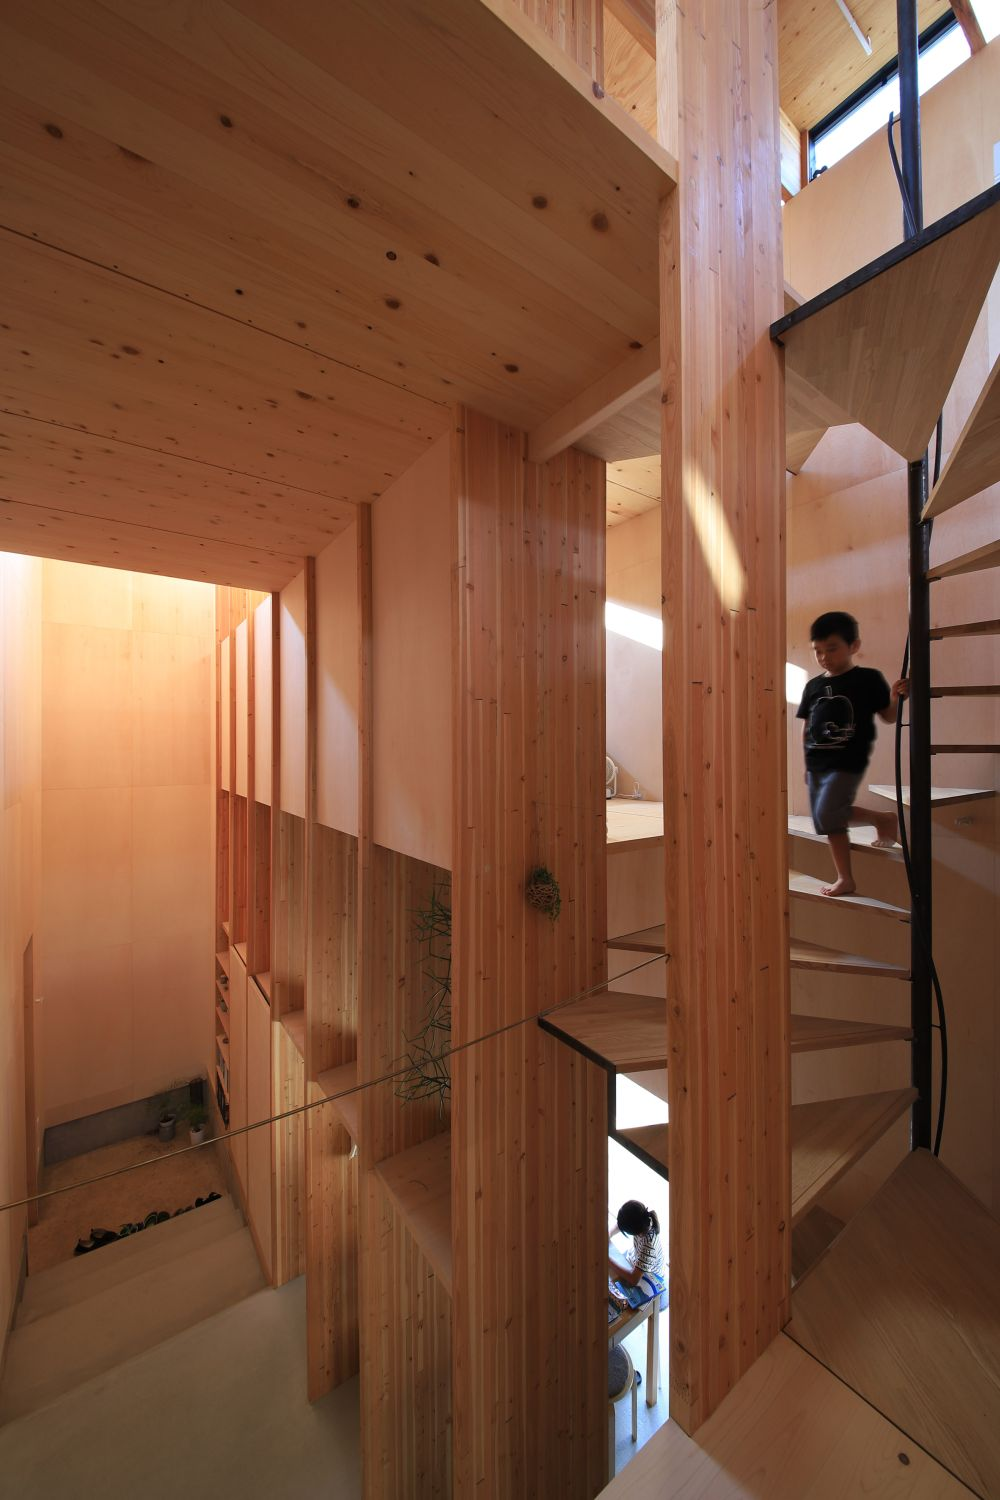 1560511772 365 cool minimalist homes made from wood that sync with nature - Cool Minimalist Homes Made From Wood That Sync With Nature